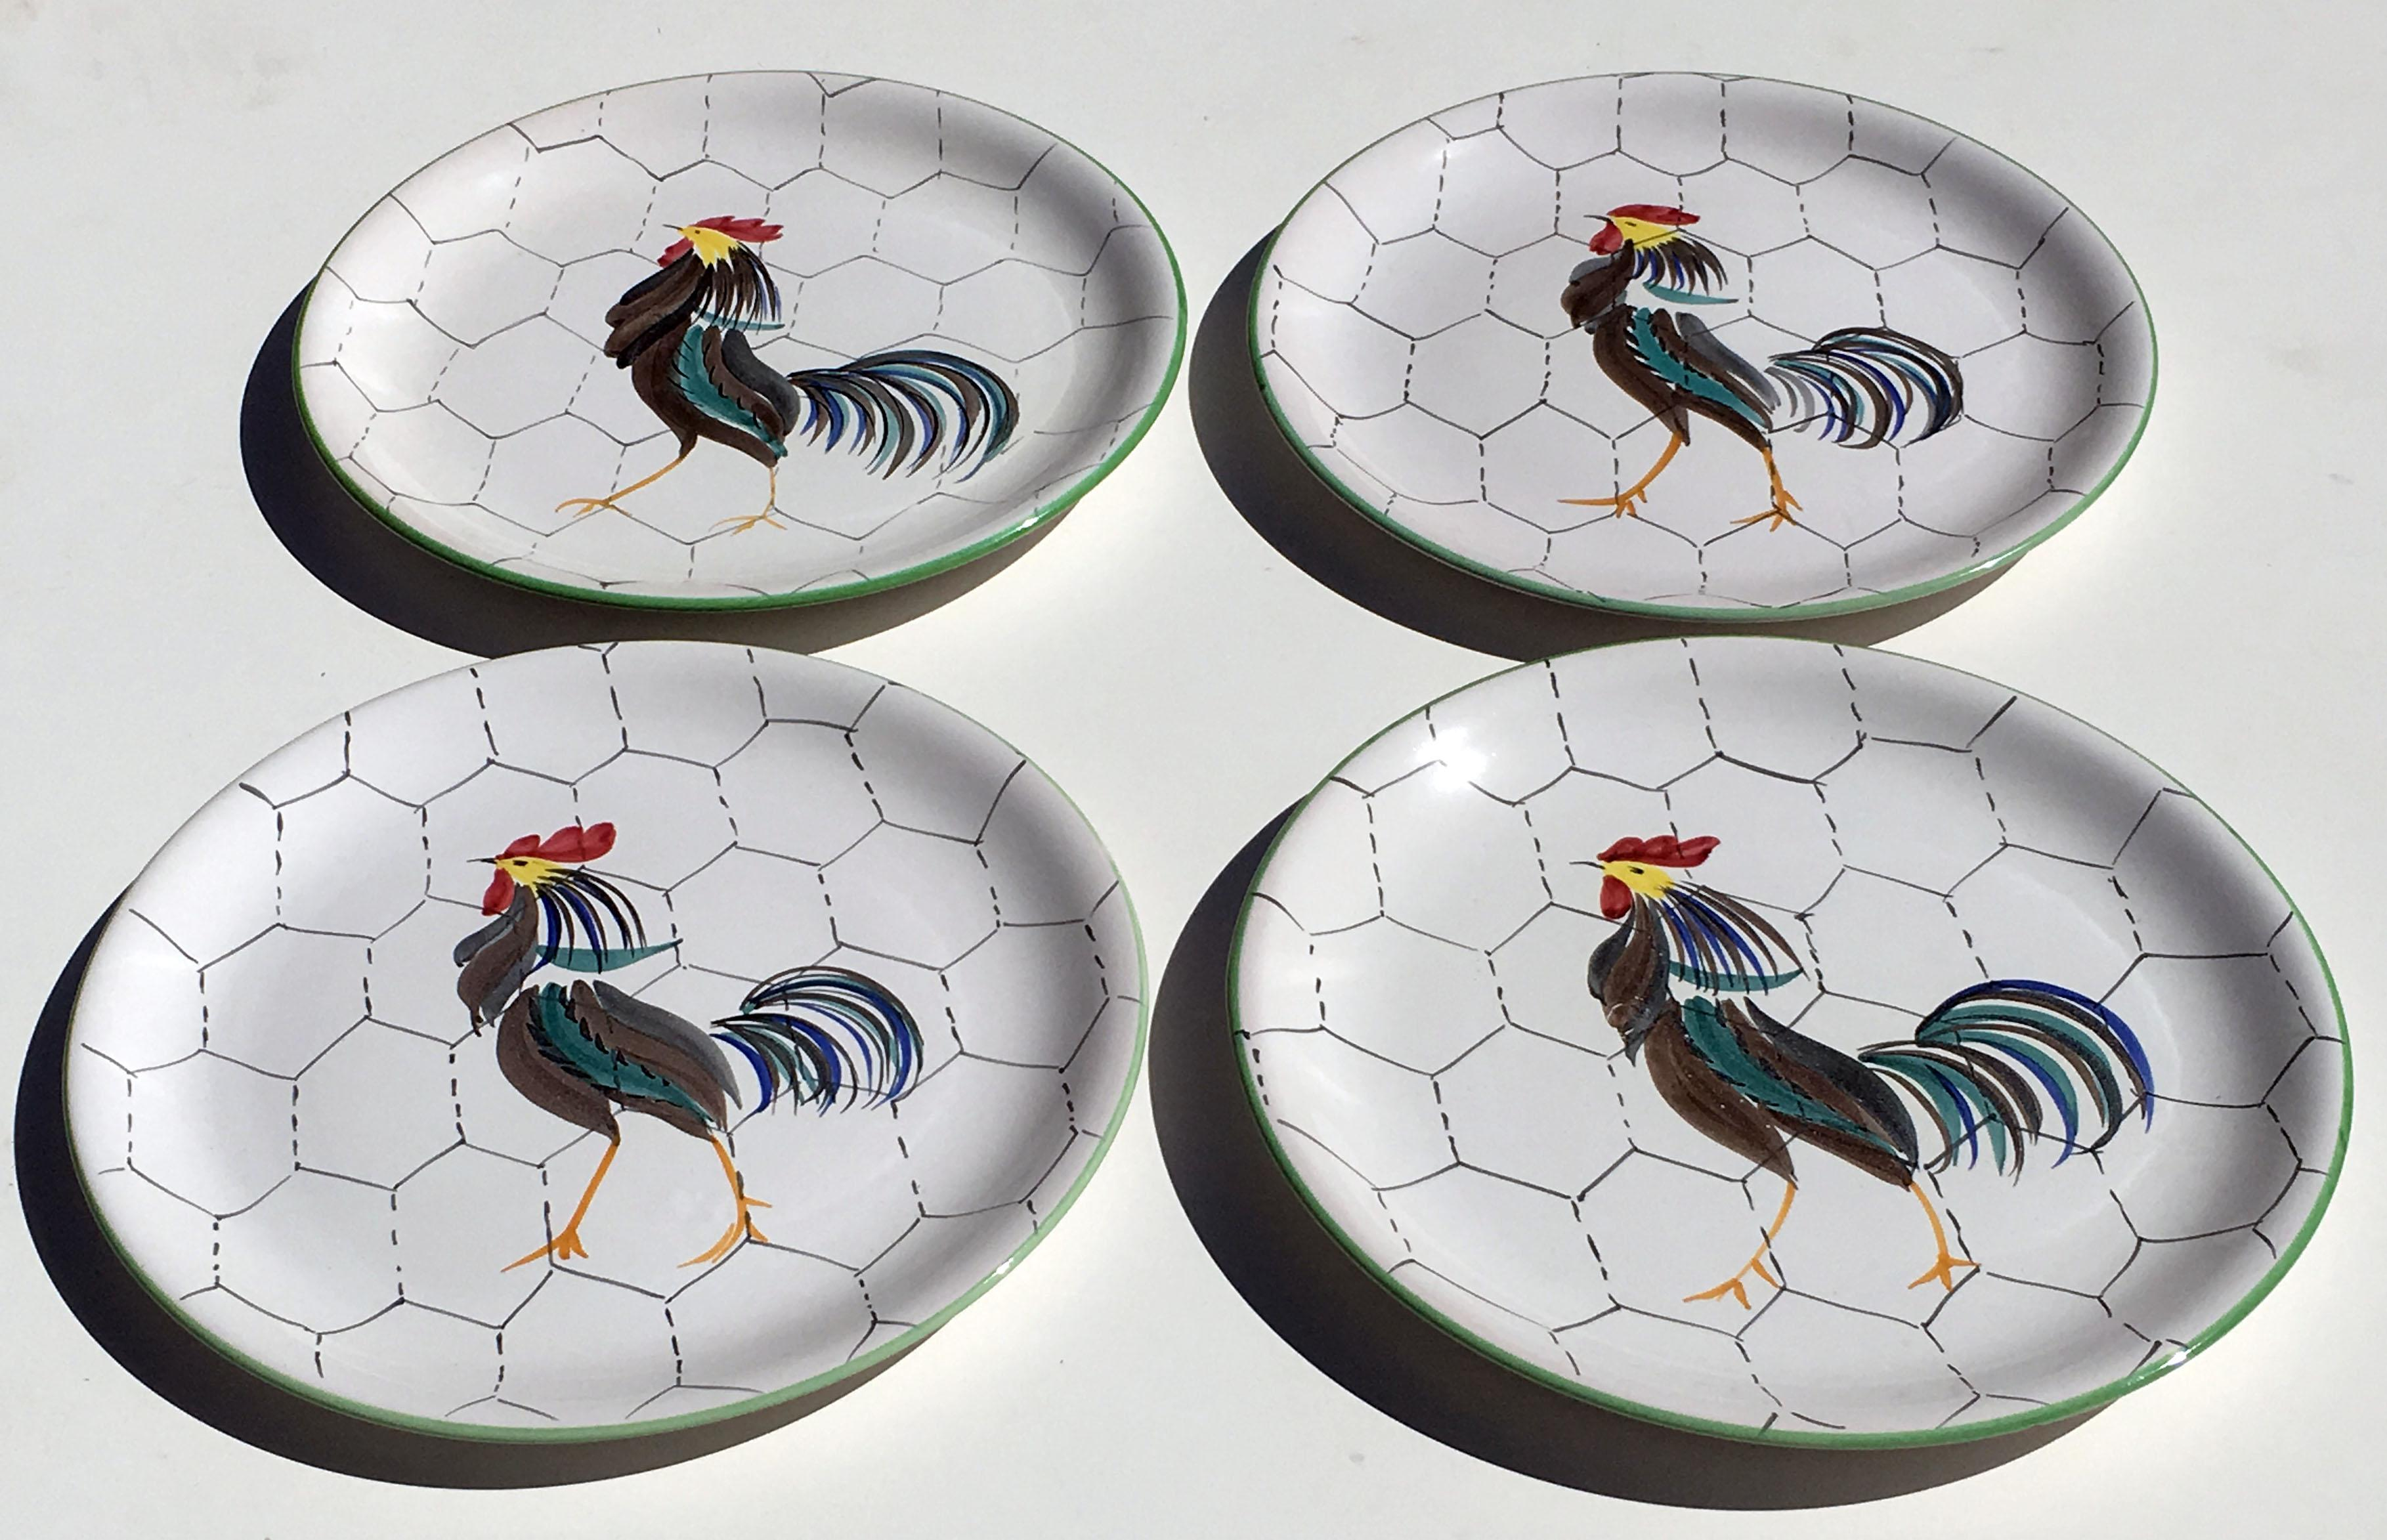 1950s Italian Hand Painted Rooster Dinner Plates - Set of 4 - Image 7 of 10  sc 1 st  Chairish & 1950s Italian Hand Painted Rooster Dinner Plates - Set of 4 | Chairish